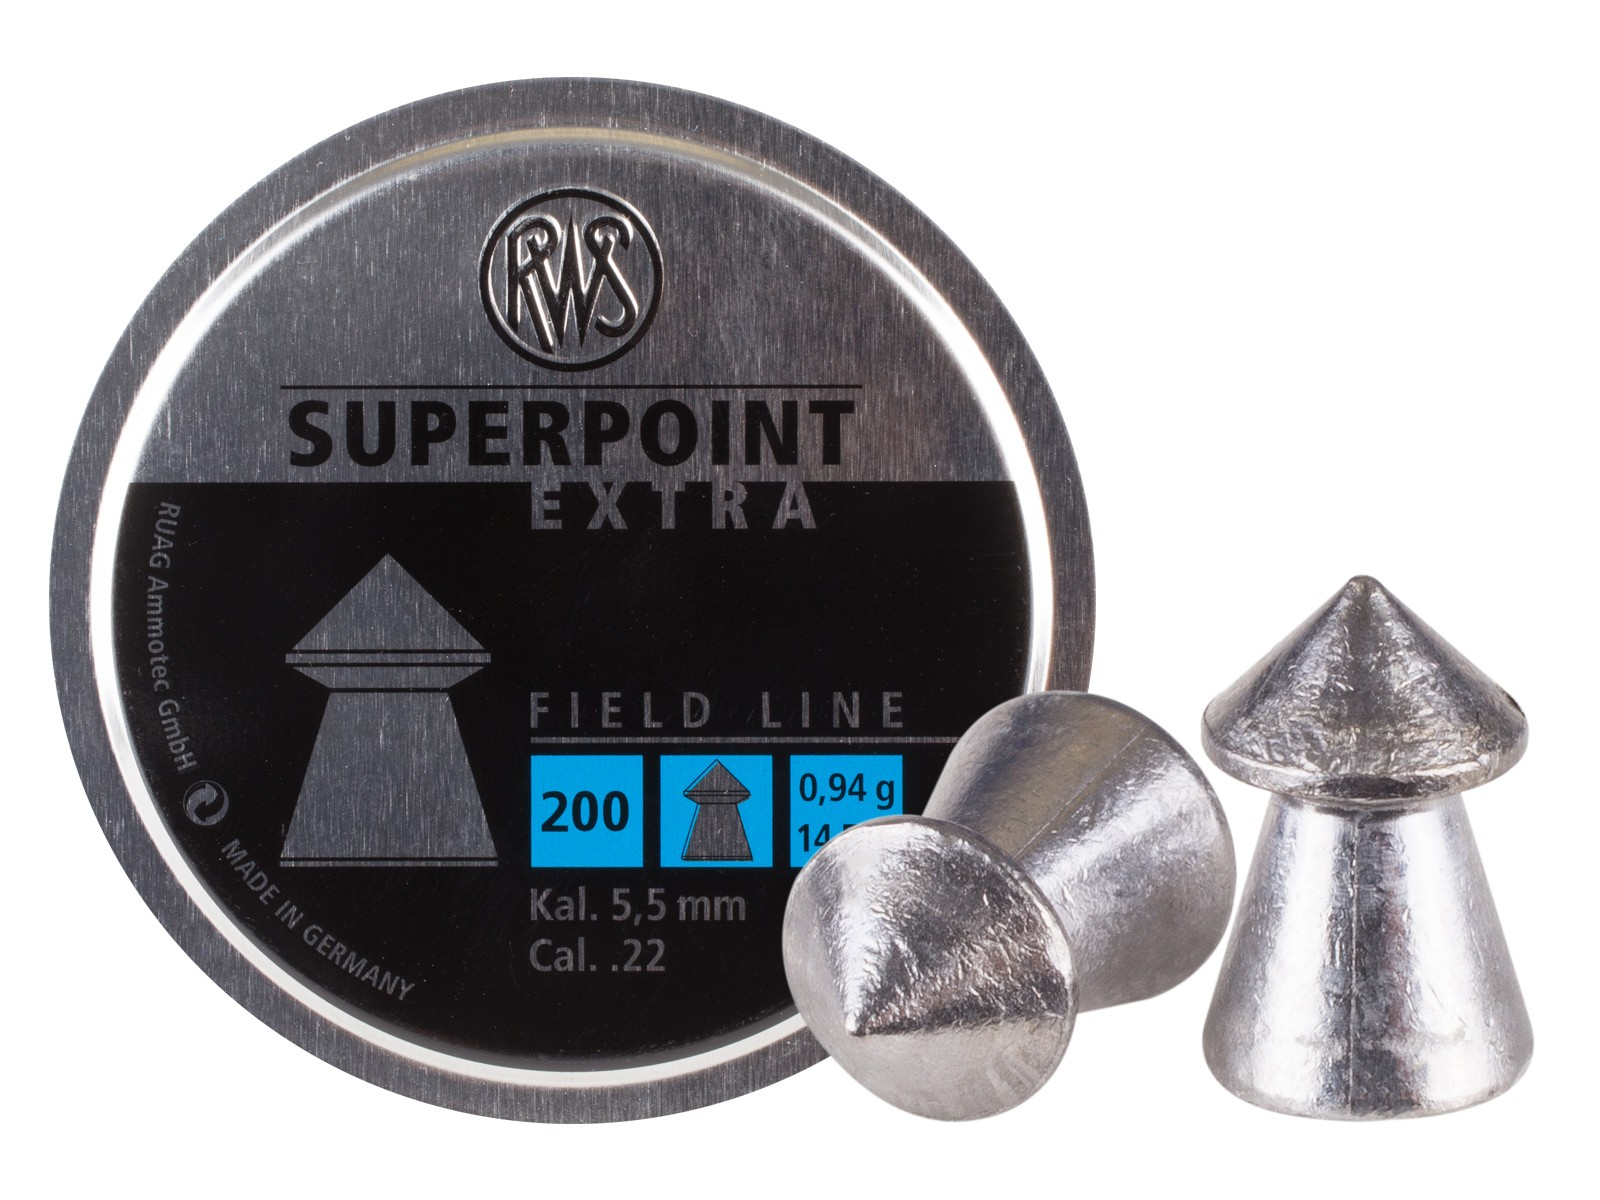 RWS Superpoint Extra